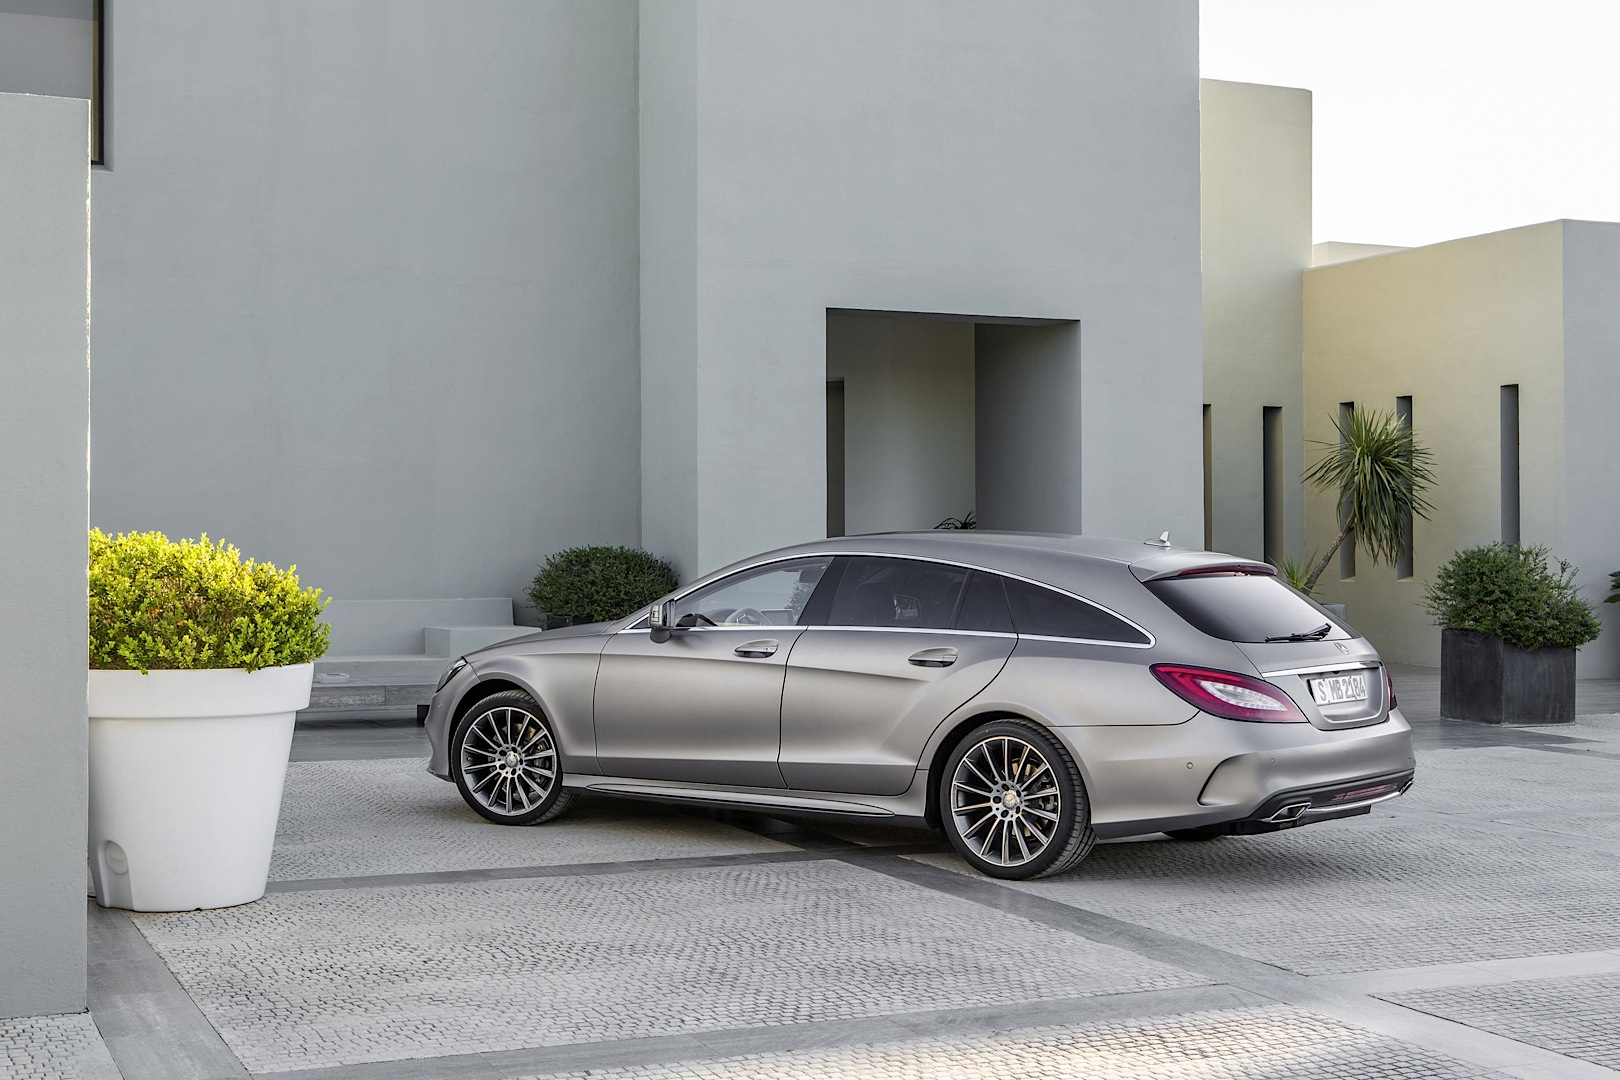 Mercedes-Benz Quietly Introduces All-New V6 Engine on CLS Facelift